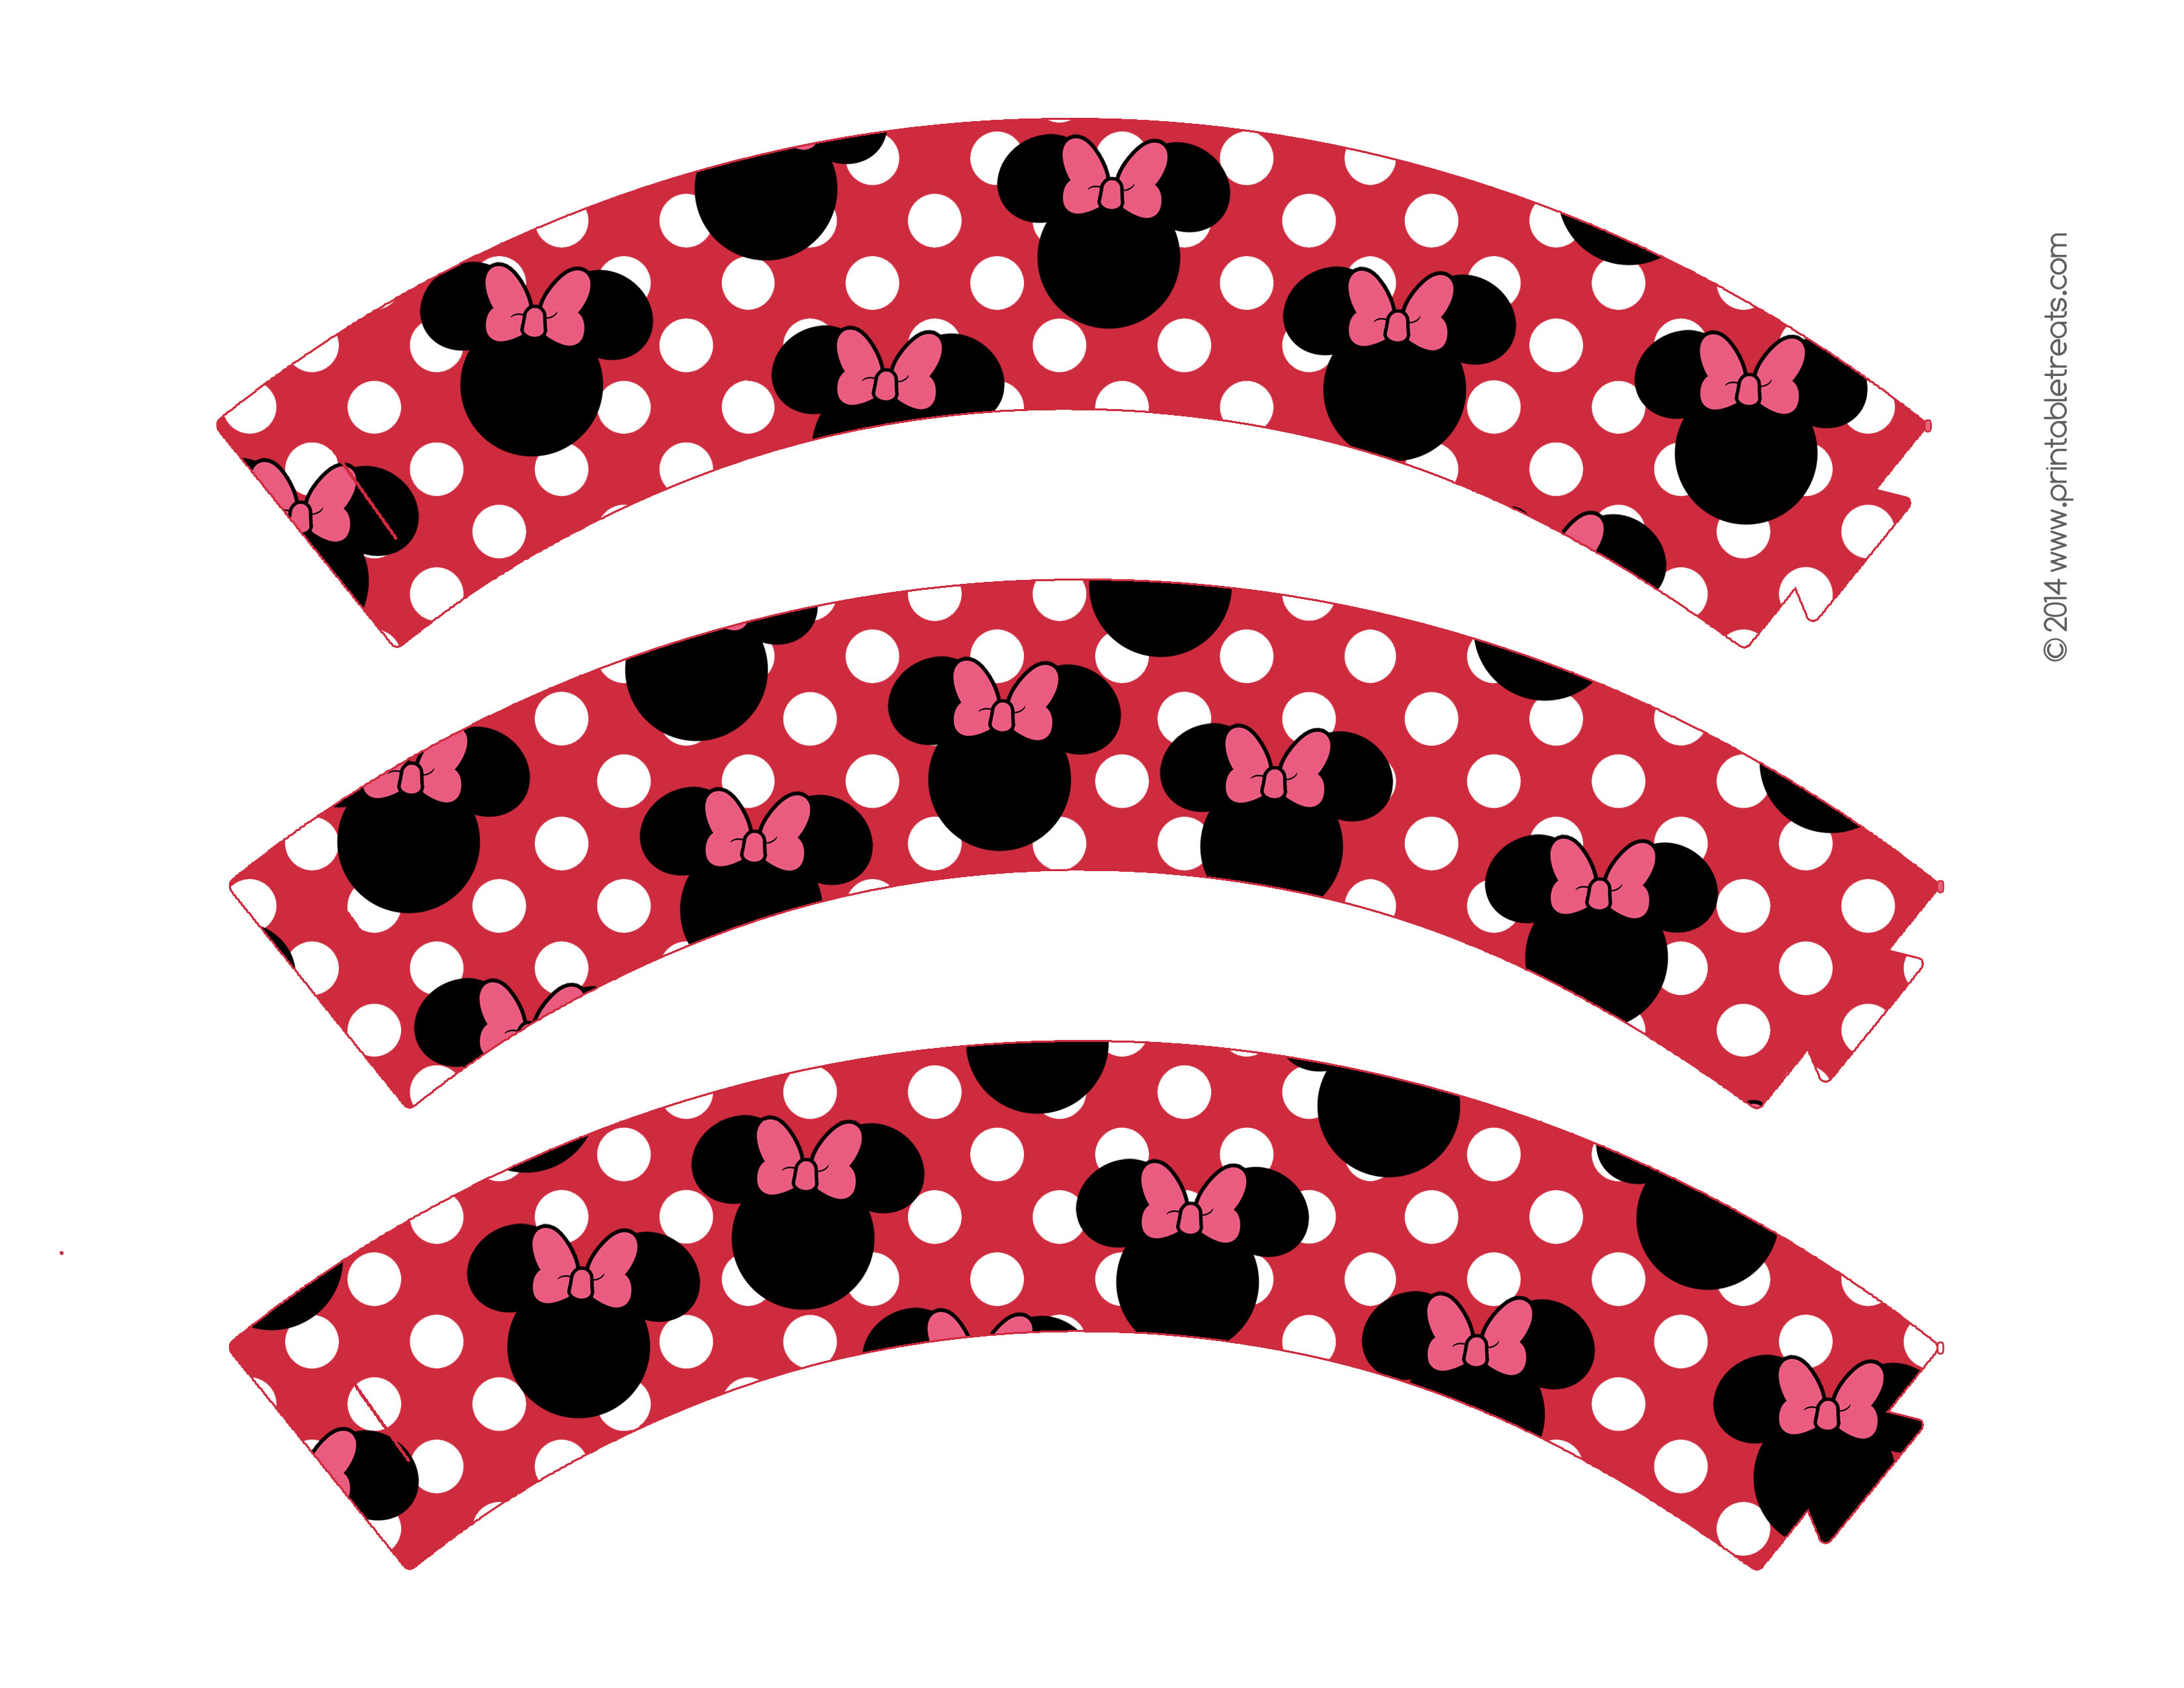 Free-Printable-Minnie-Mouse-Cupcake-Wrappers-1 - Baby No Soucy - Free Printable Minnie Mouse Cupcake Wrappers